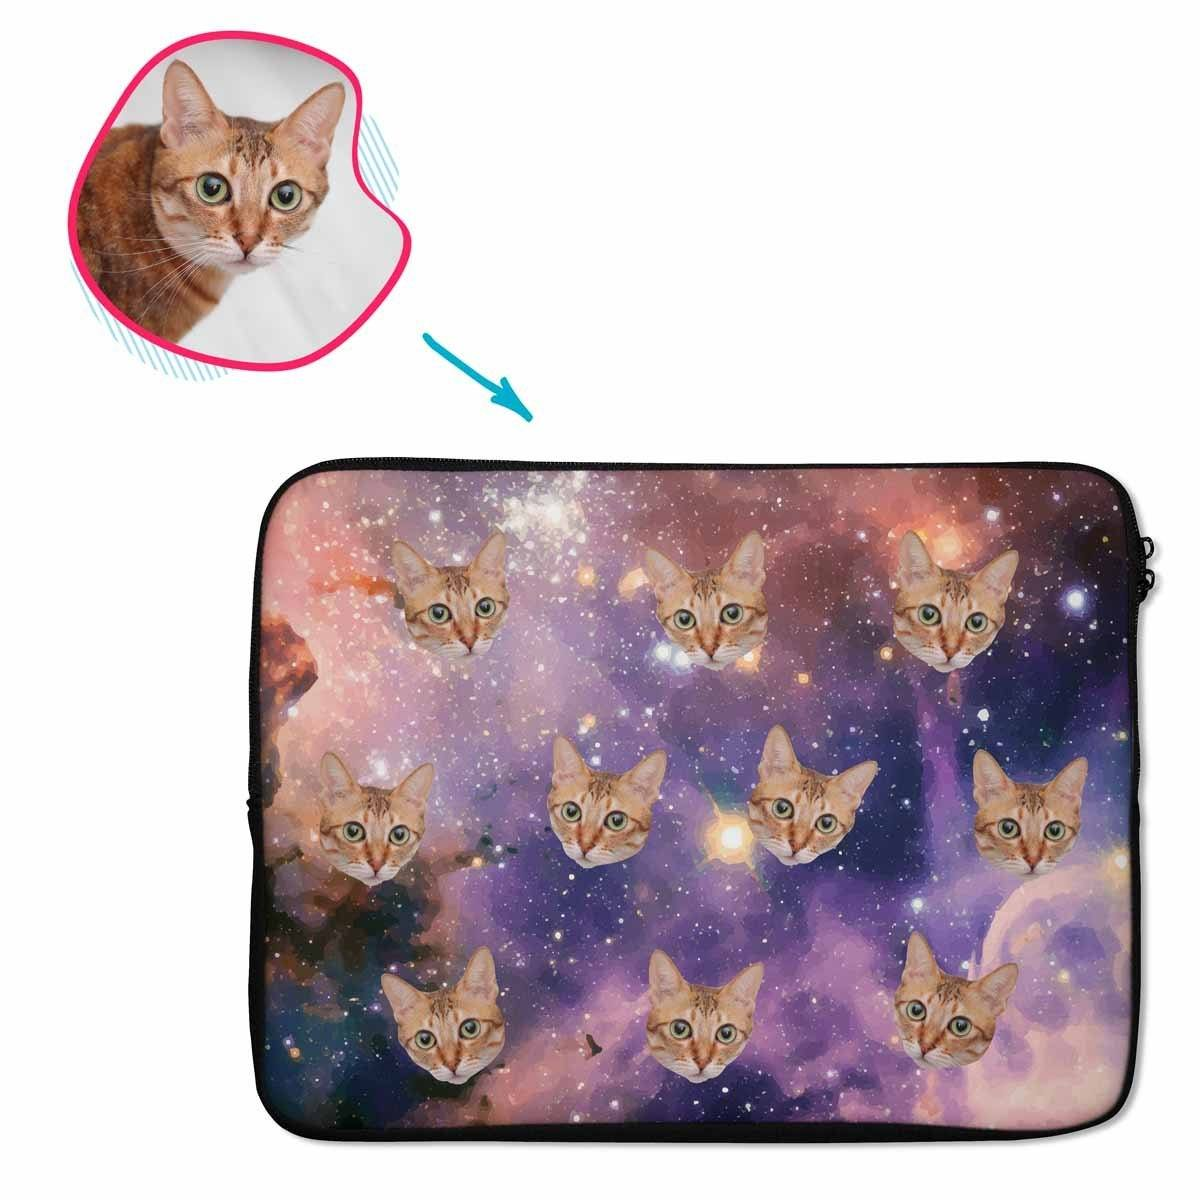 galaxy Galaxy laptop sleeve personalized with photo of face printed on them